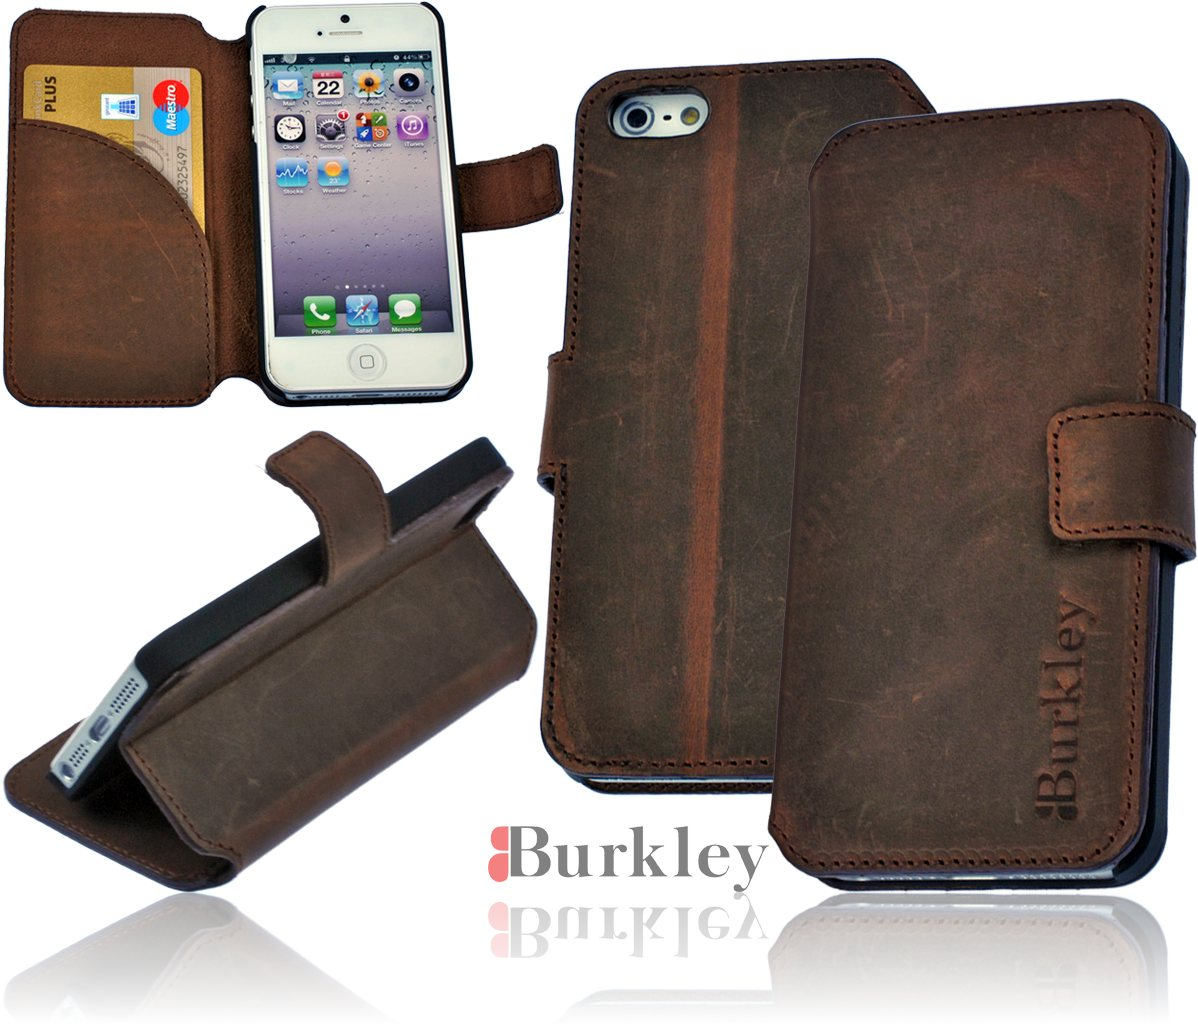 burkley antik leder flip tasche f r iphone 5 5s flip case. Black Bedroom Furniture Sets. Home Design Ideas